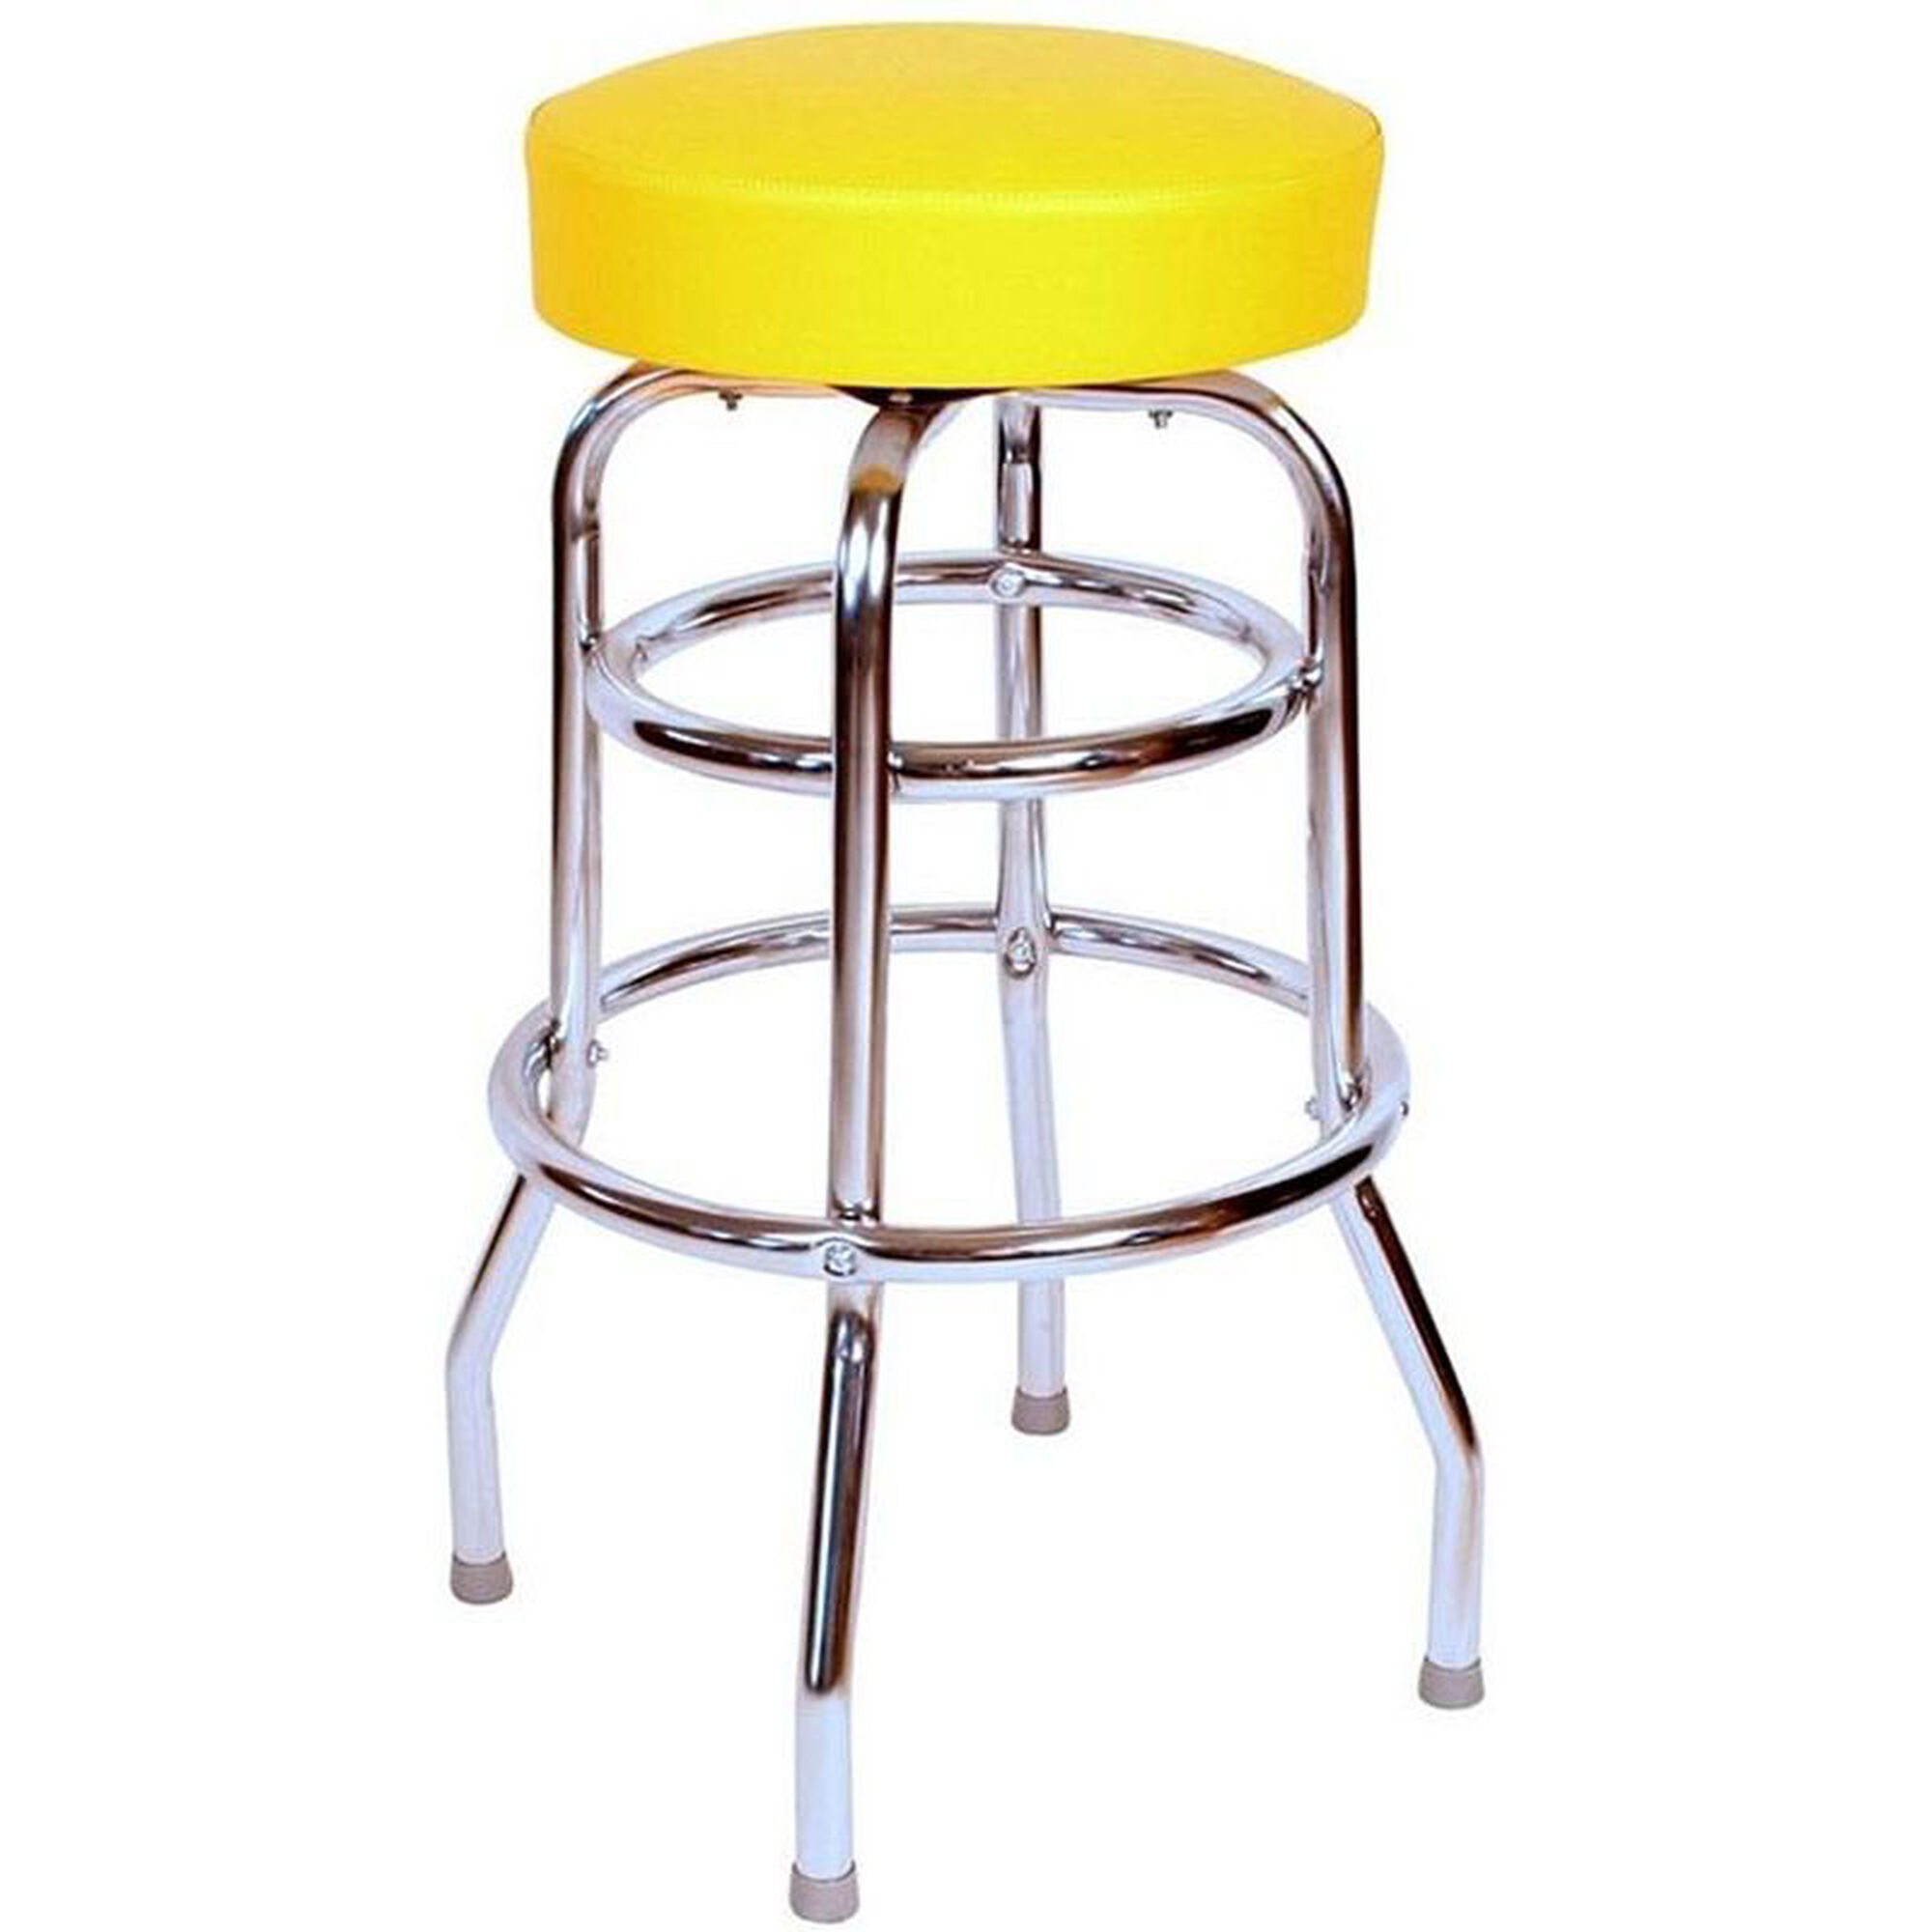 Terrific 50S Retro Backless 30H Swivel Bar Stool With Double Ring Chrome Frame And Padded Seat Yellow Vinyl Machost Co Dining Chair Design Ideas Machostcouk